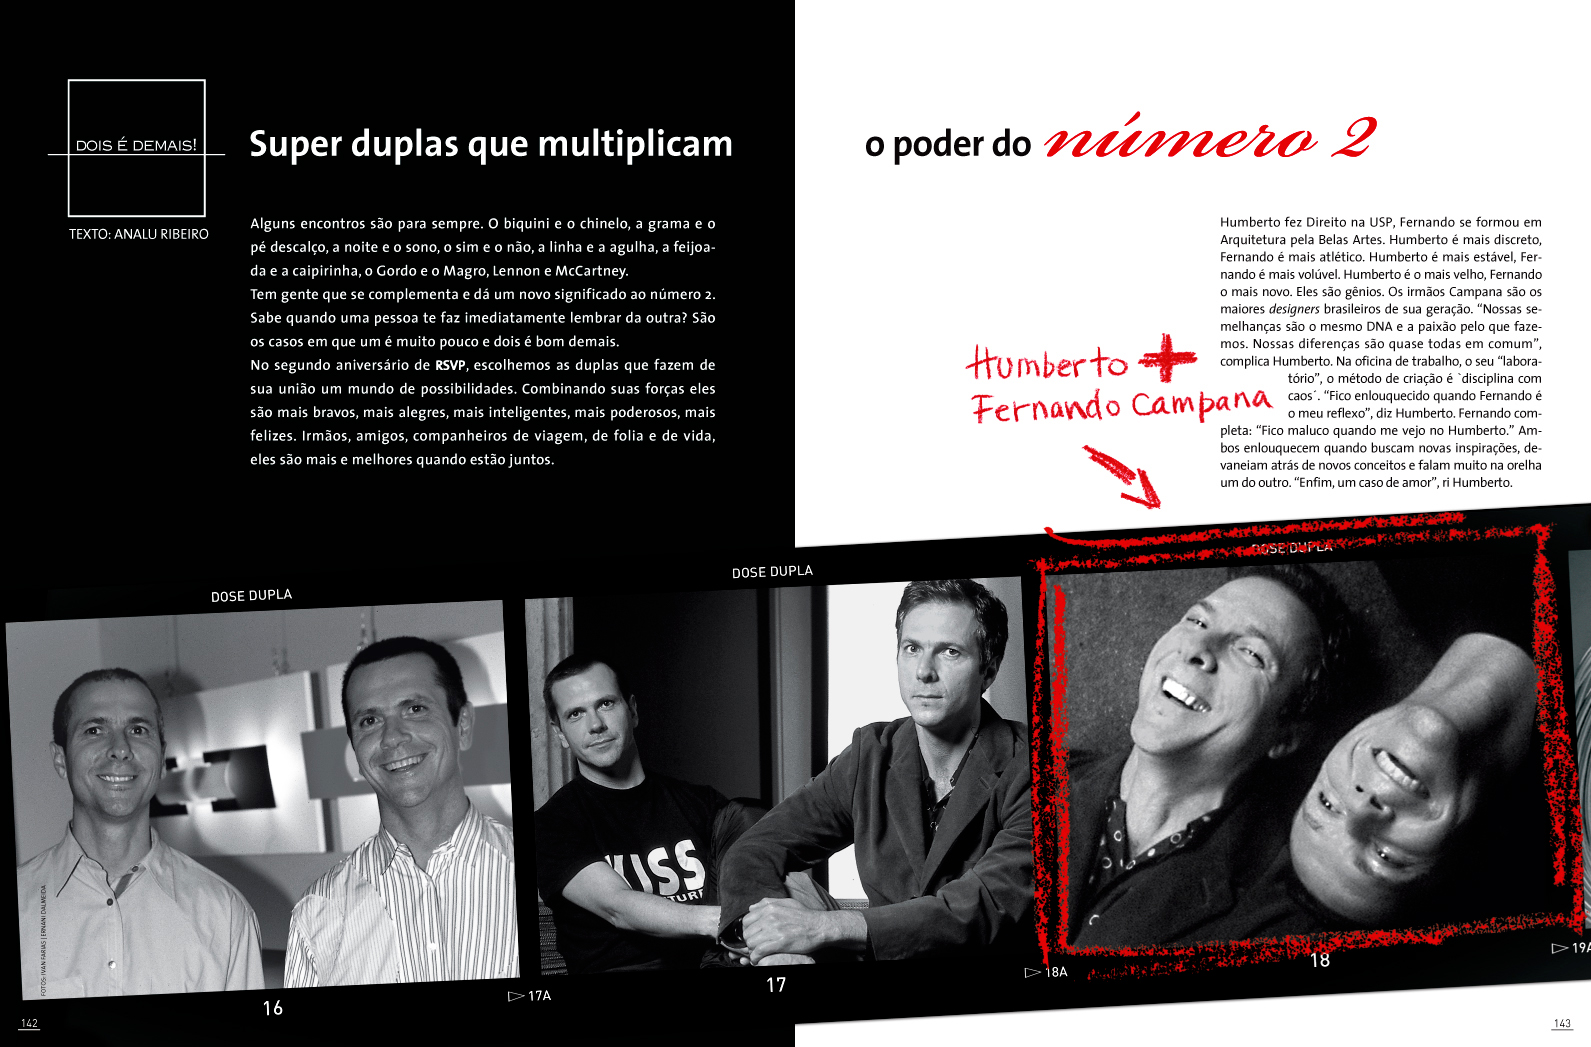 revista RSVP - Ed. Abril/Caras